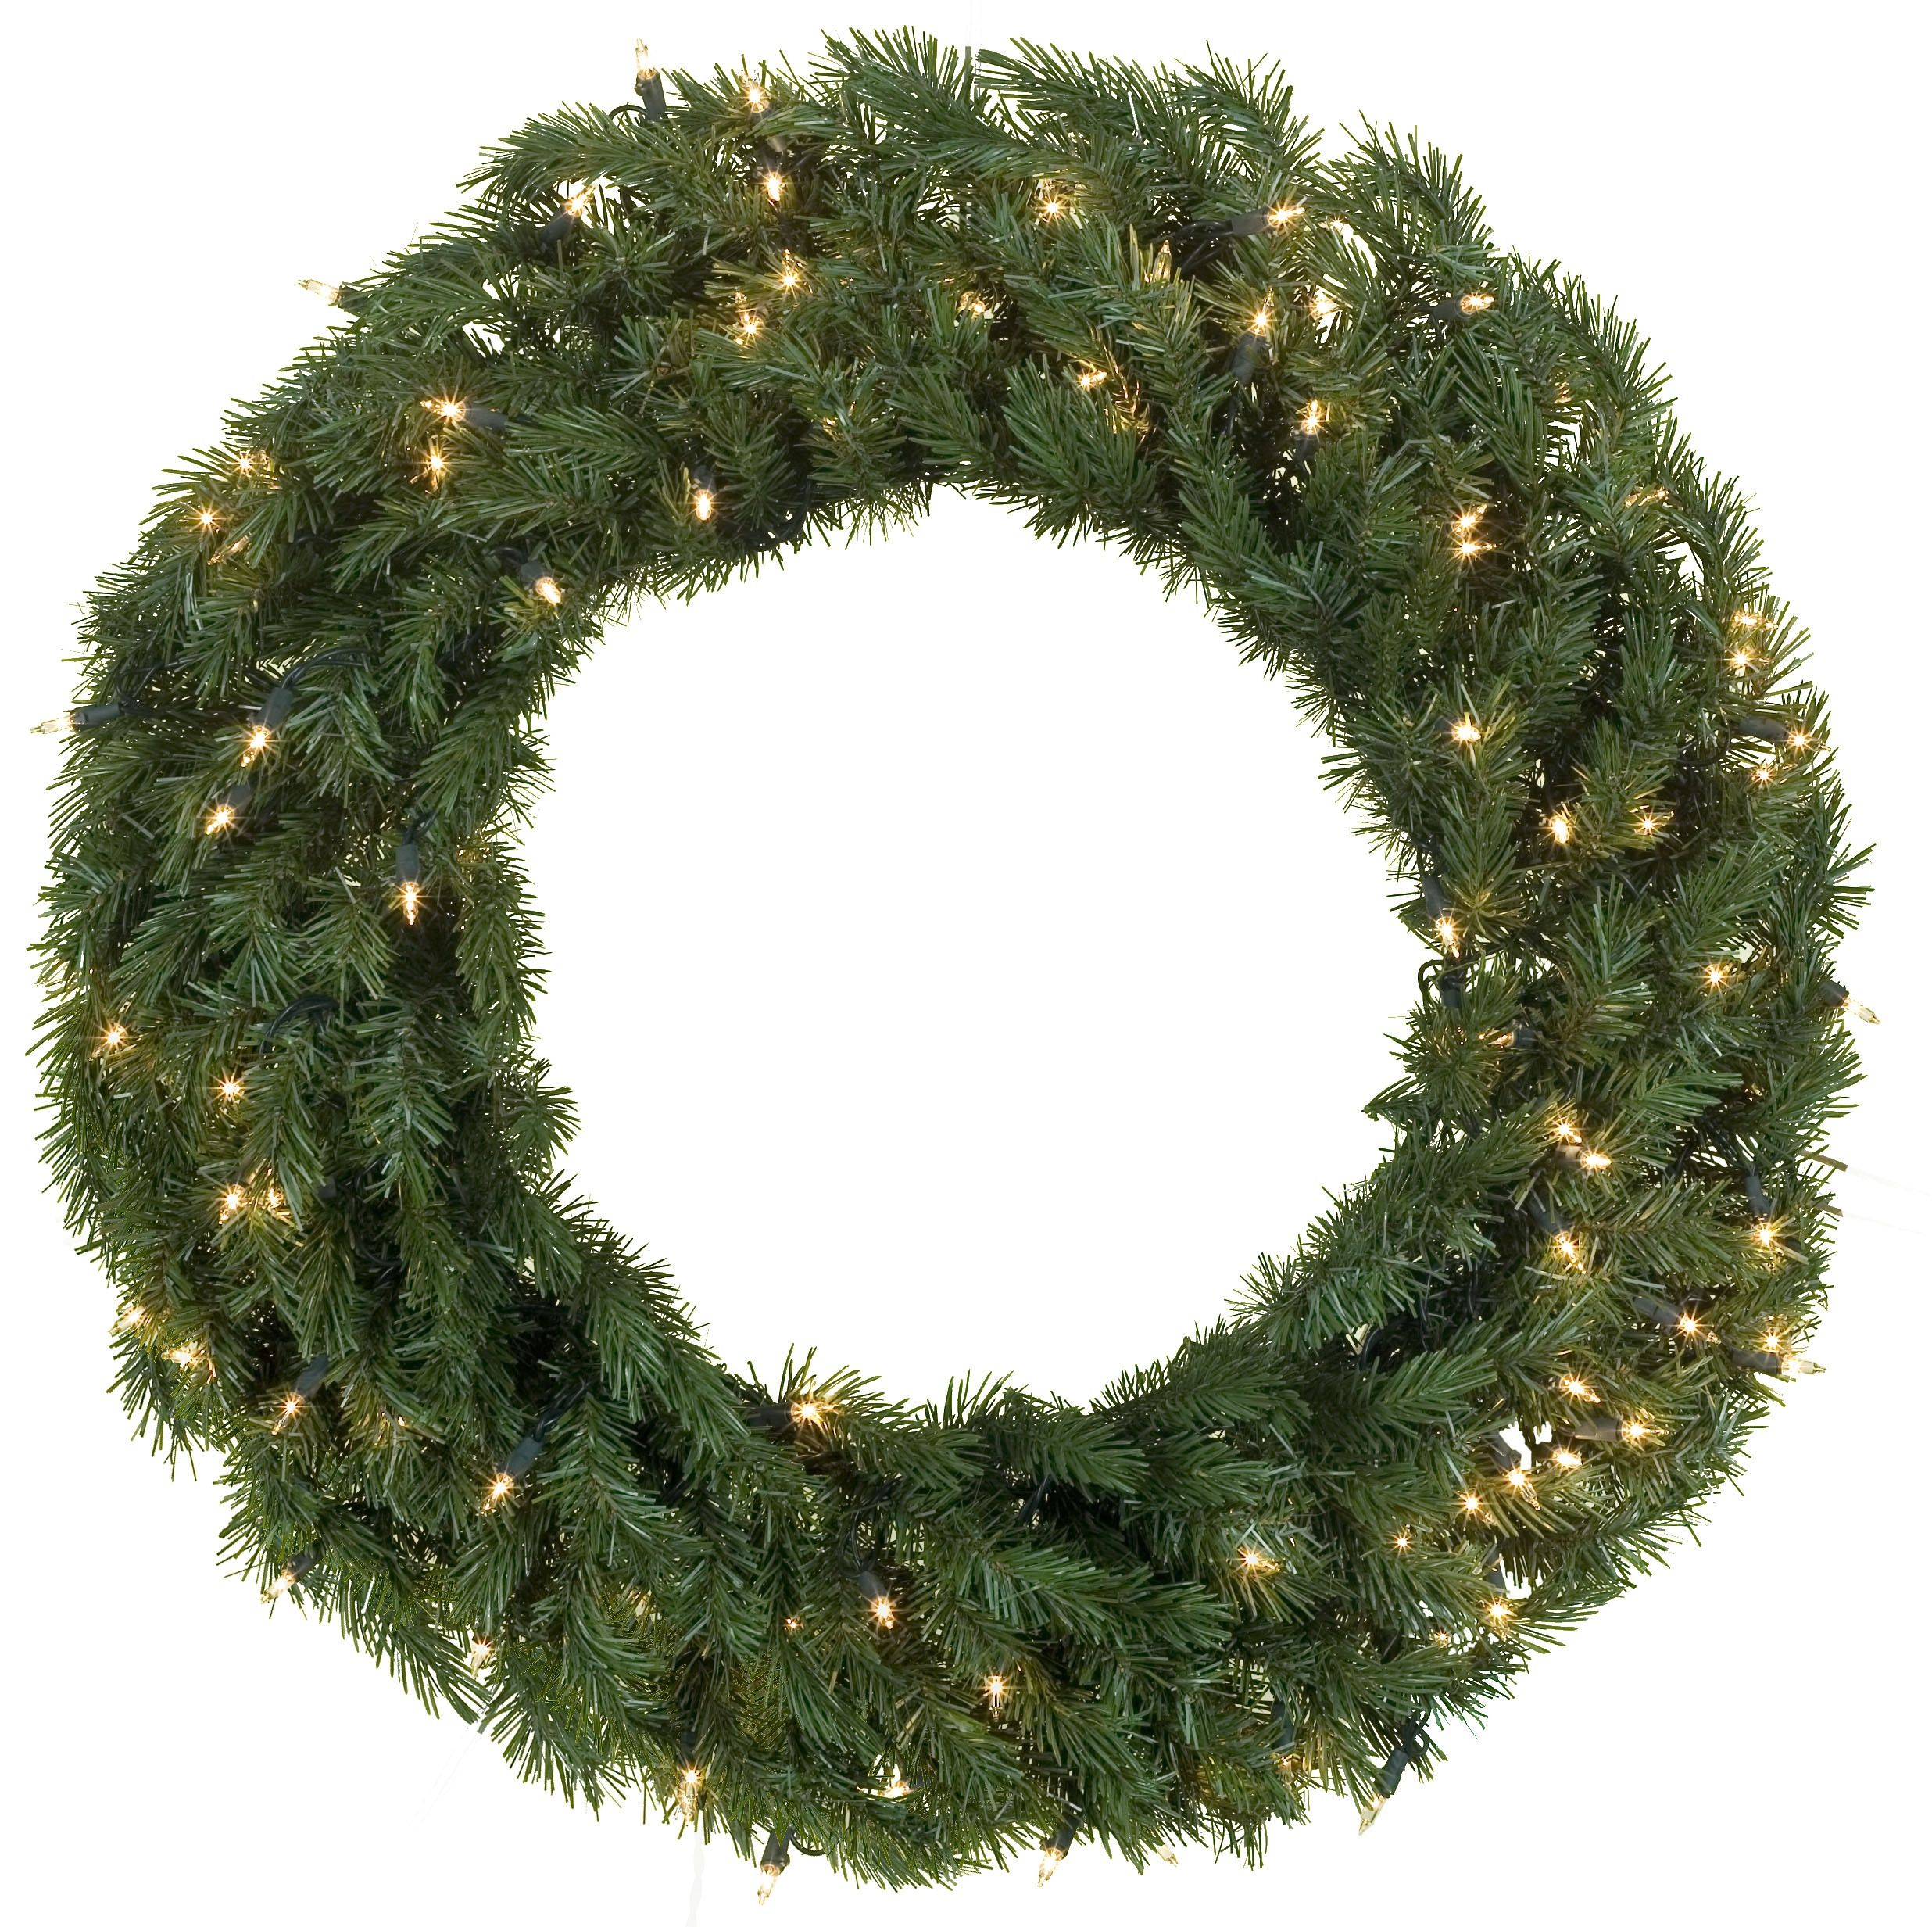 Home « Christmas Wreaths and Garland « Artificial Christmas Wreaths ...